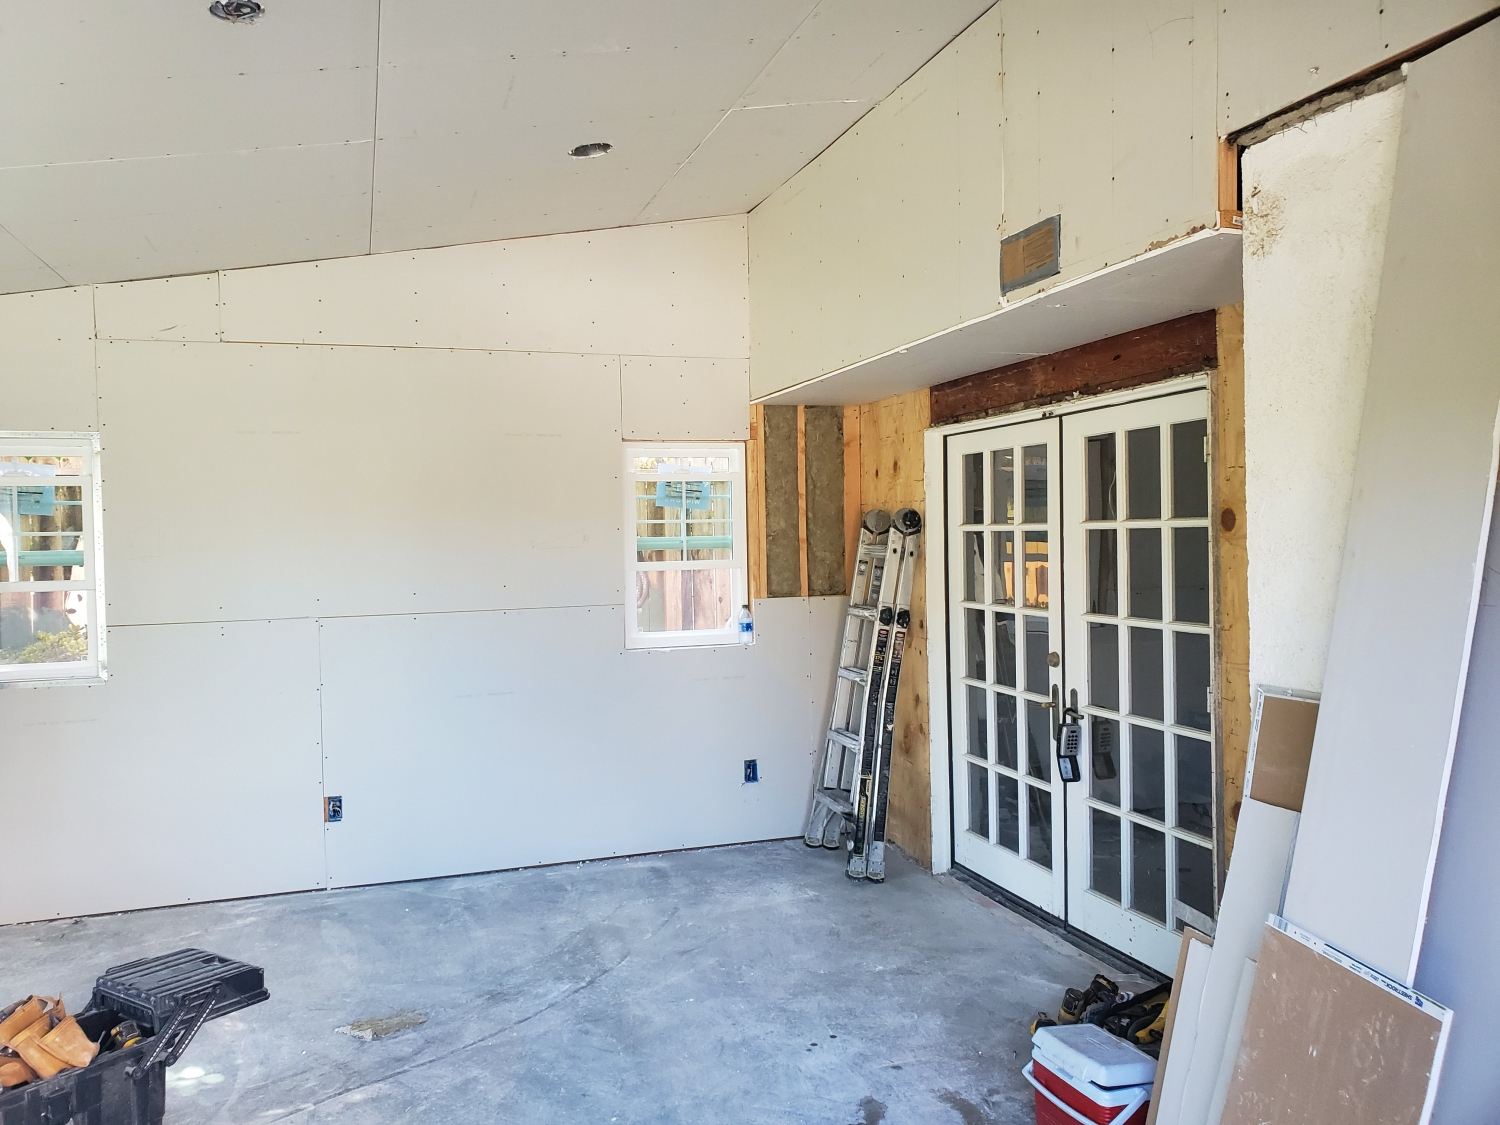 Inside the addition